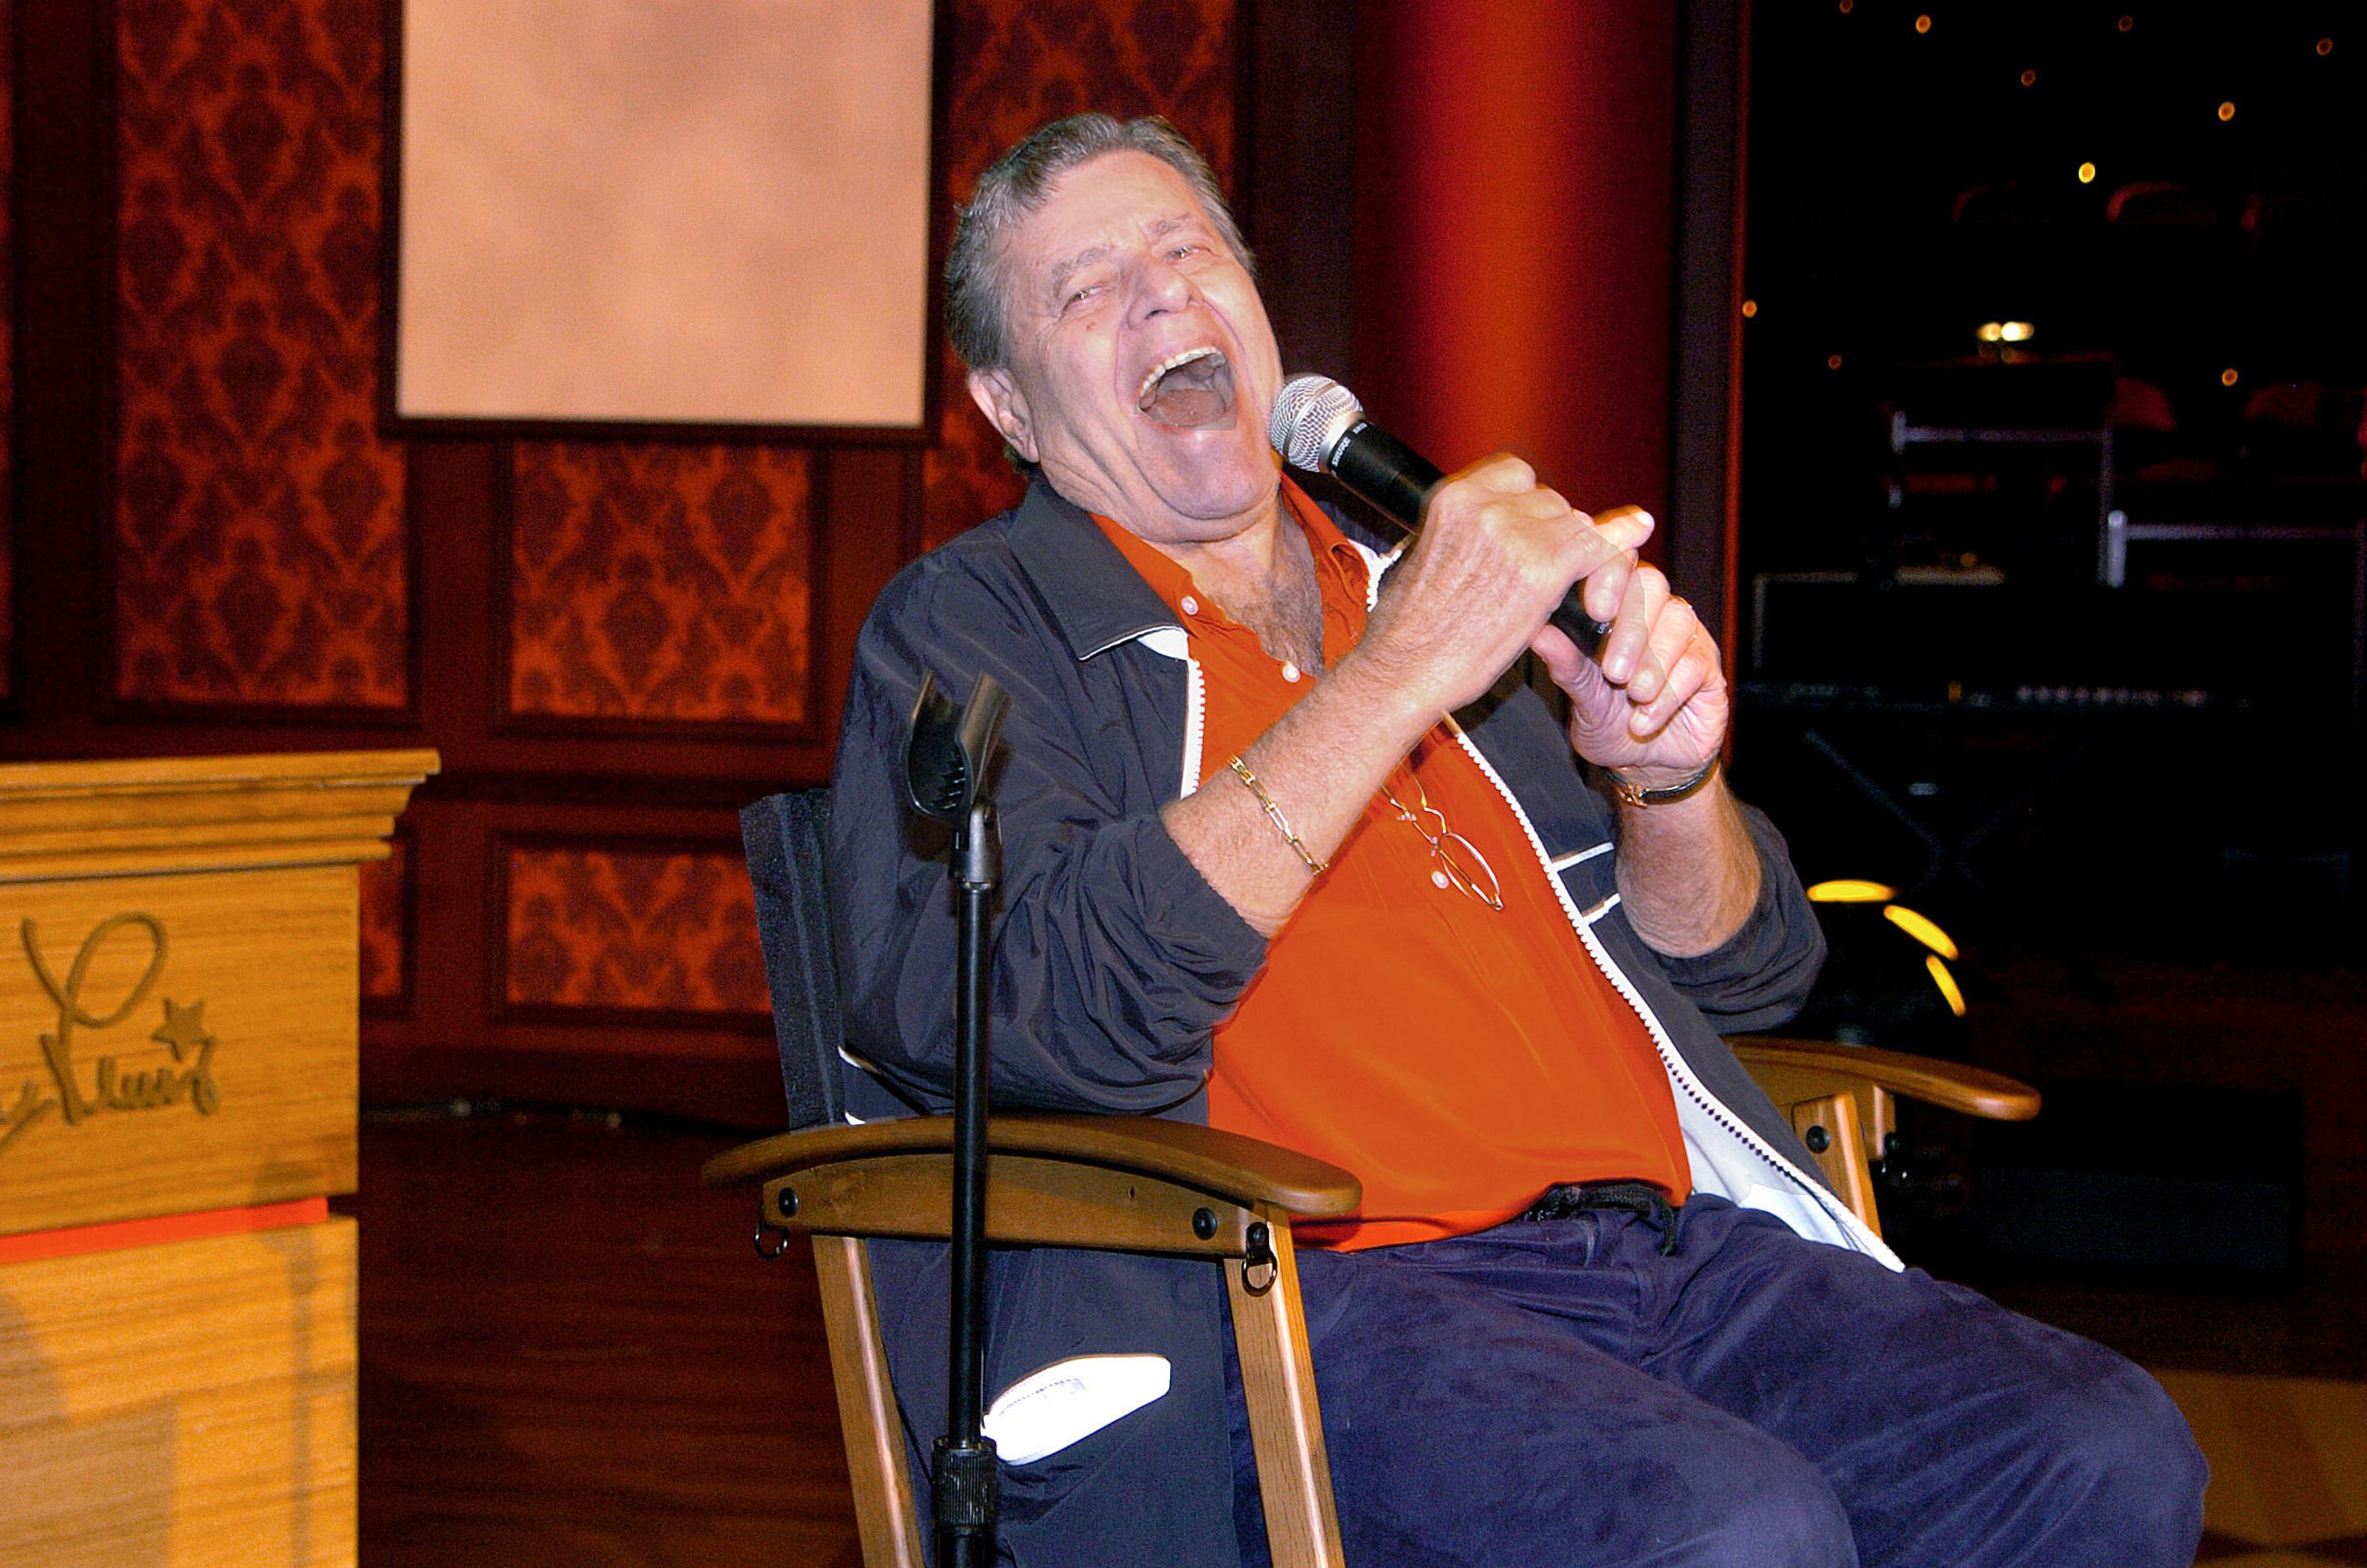 LAS VEGAS-AUGUST 31:Entertainment icon Jerry Lewis enjoys bantering with the media during a press conference for his MDA Telethon at the South Coast Hotel and Casino on August 31, 2006 in Las Vegas, Nevada. Photo by Glenn Pinkerton/Las  Vegas News Bureau